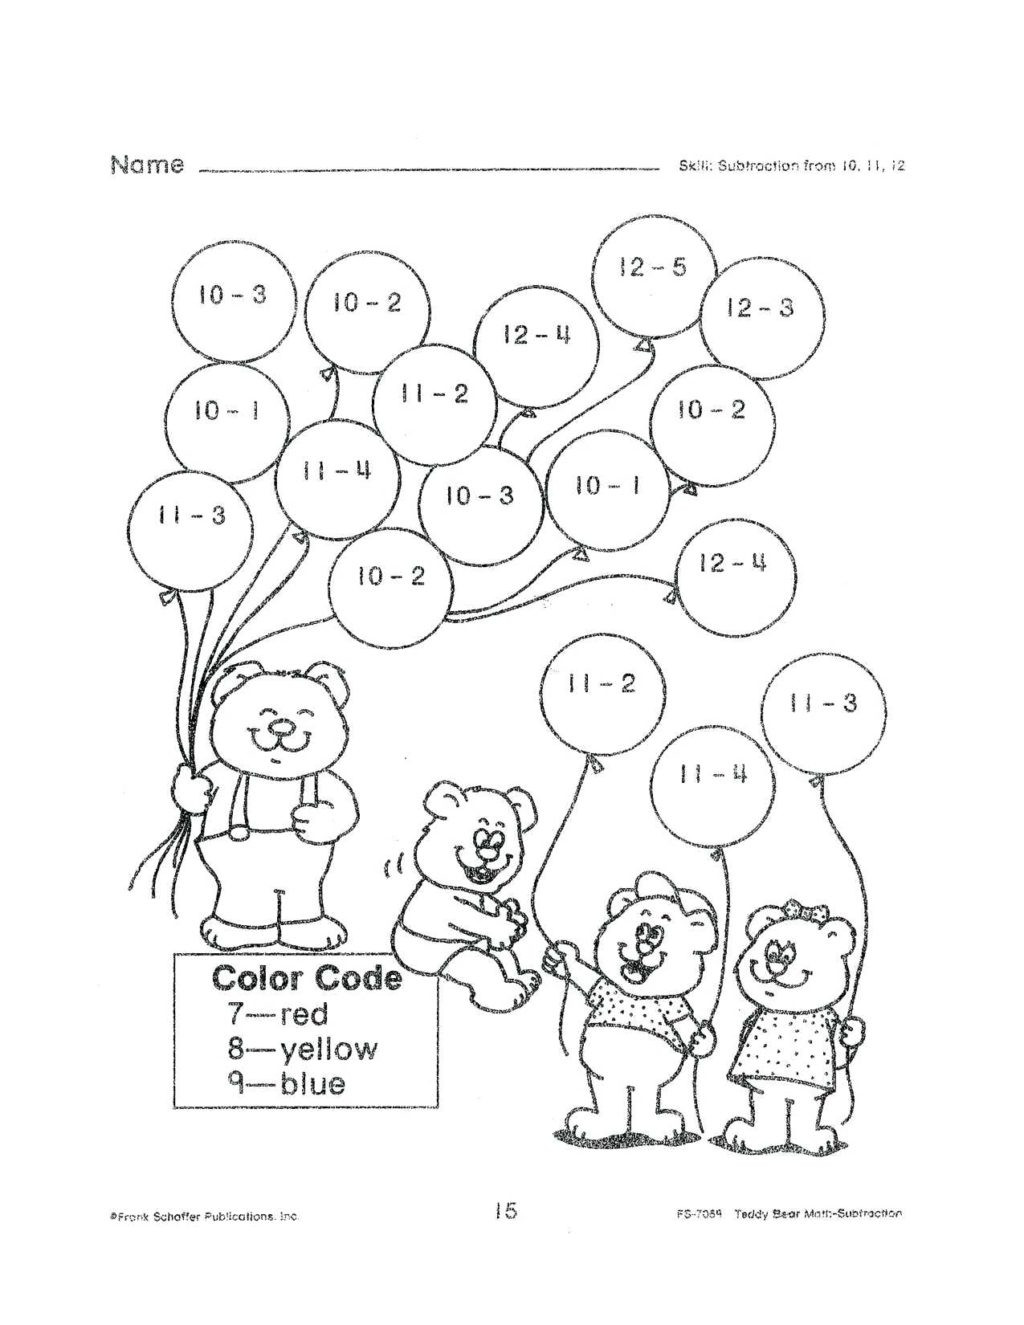 Scatter Plots Worksheets 8th Grade Worksheet Readingskheets Addition Sums 8th Grade Math